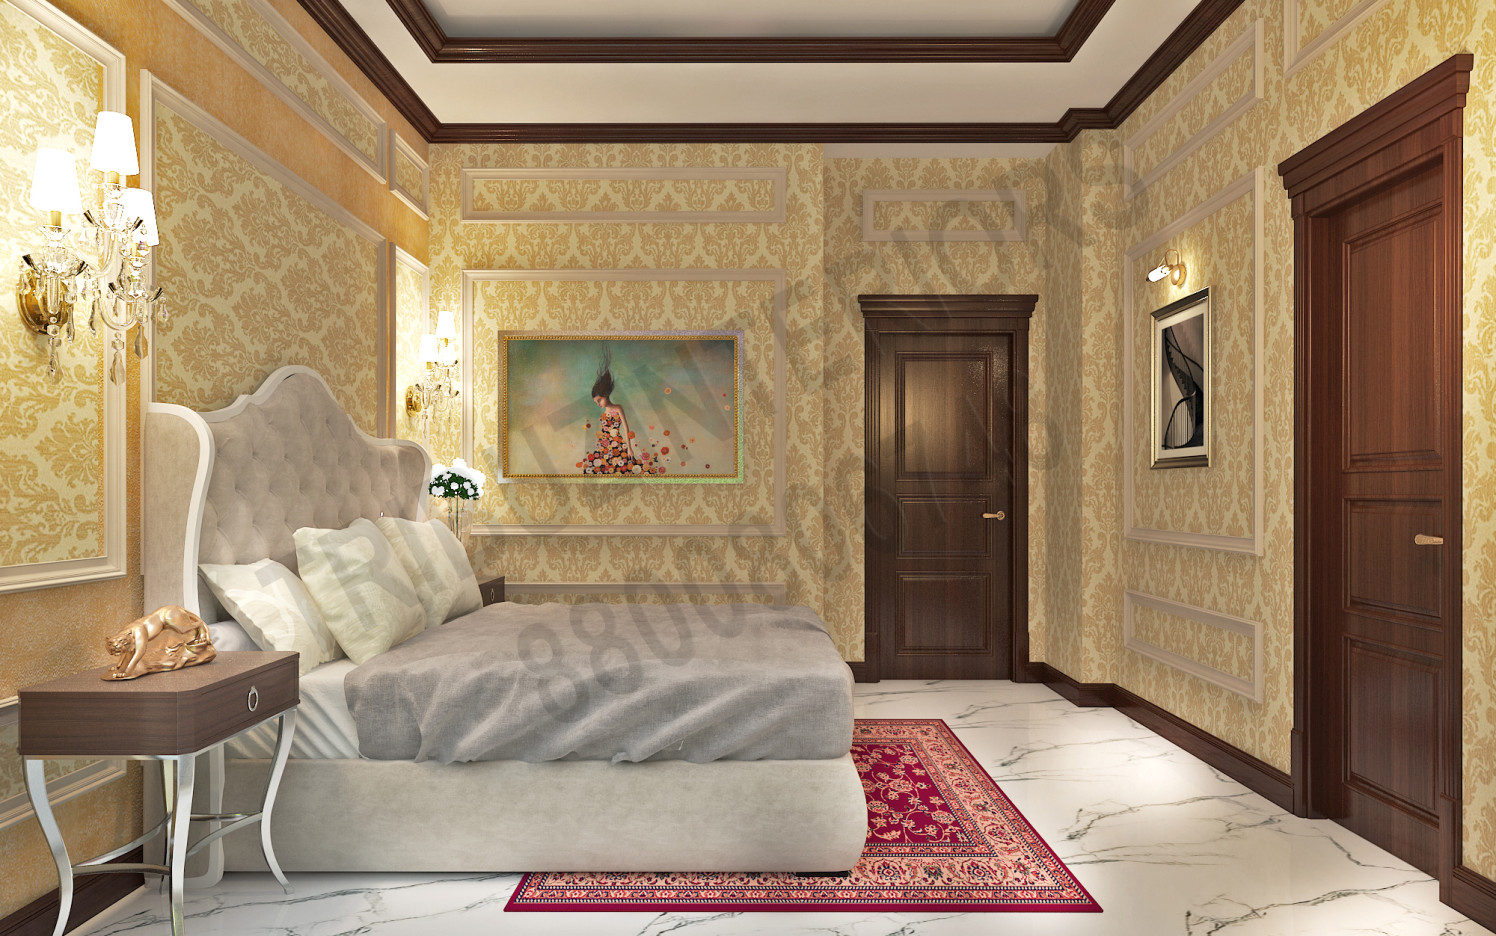 Comfortable Luxury Bedroom With Wall Art And Marble Floor by Tribuz Interiors Pvt. Ltd. Bedroom Vintage | Interior Design Photos & Ideas